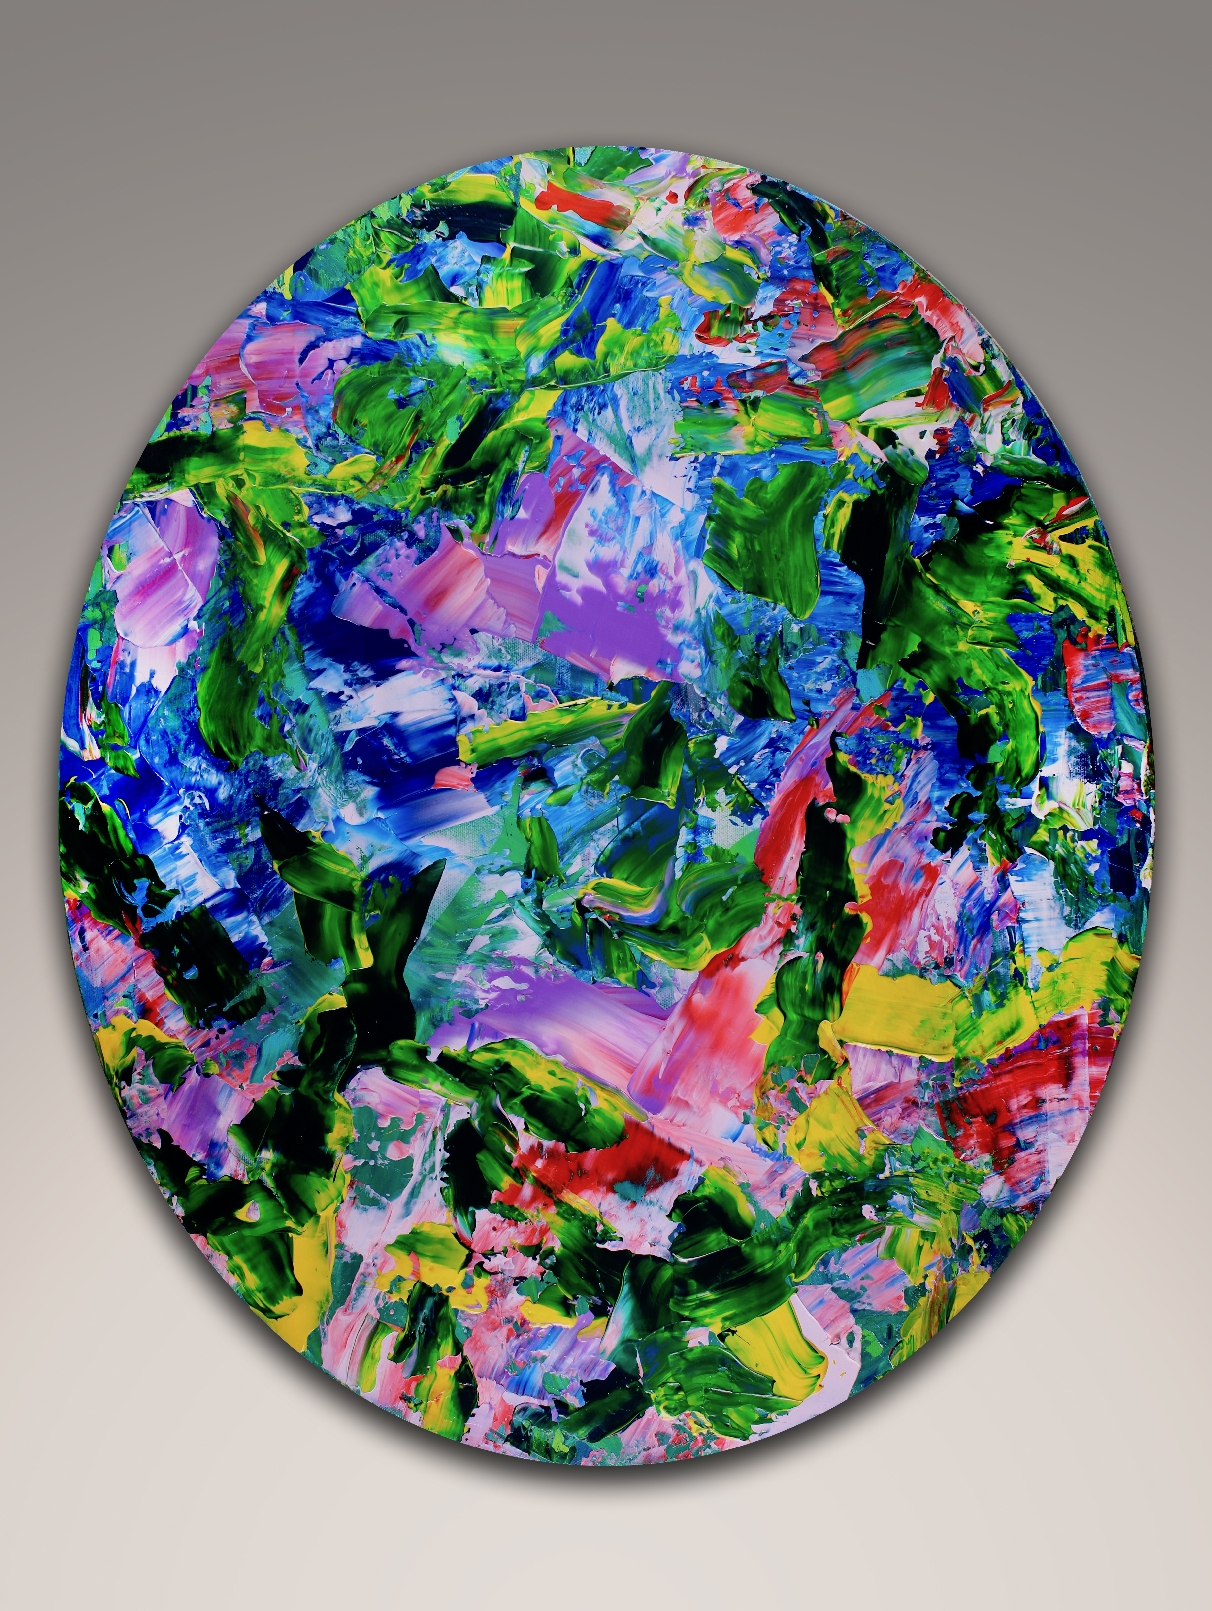 Different motions - Oval Painting! (2018) painting by Nestor Toro in Los Angeles